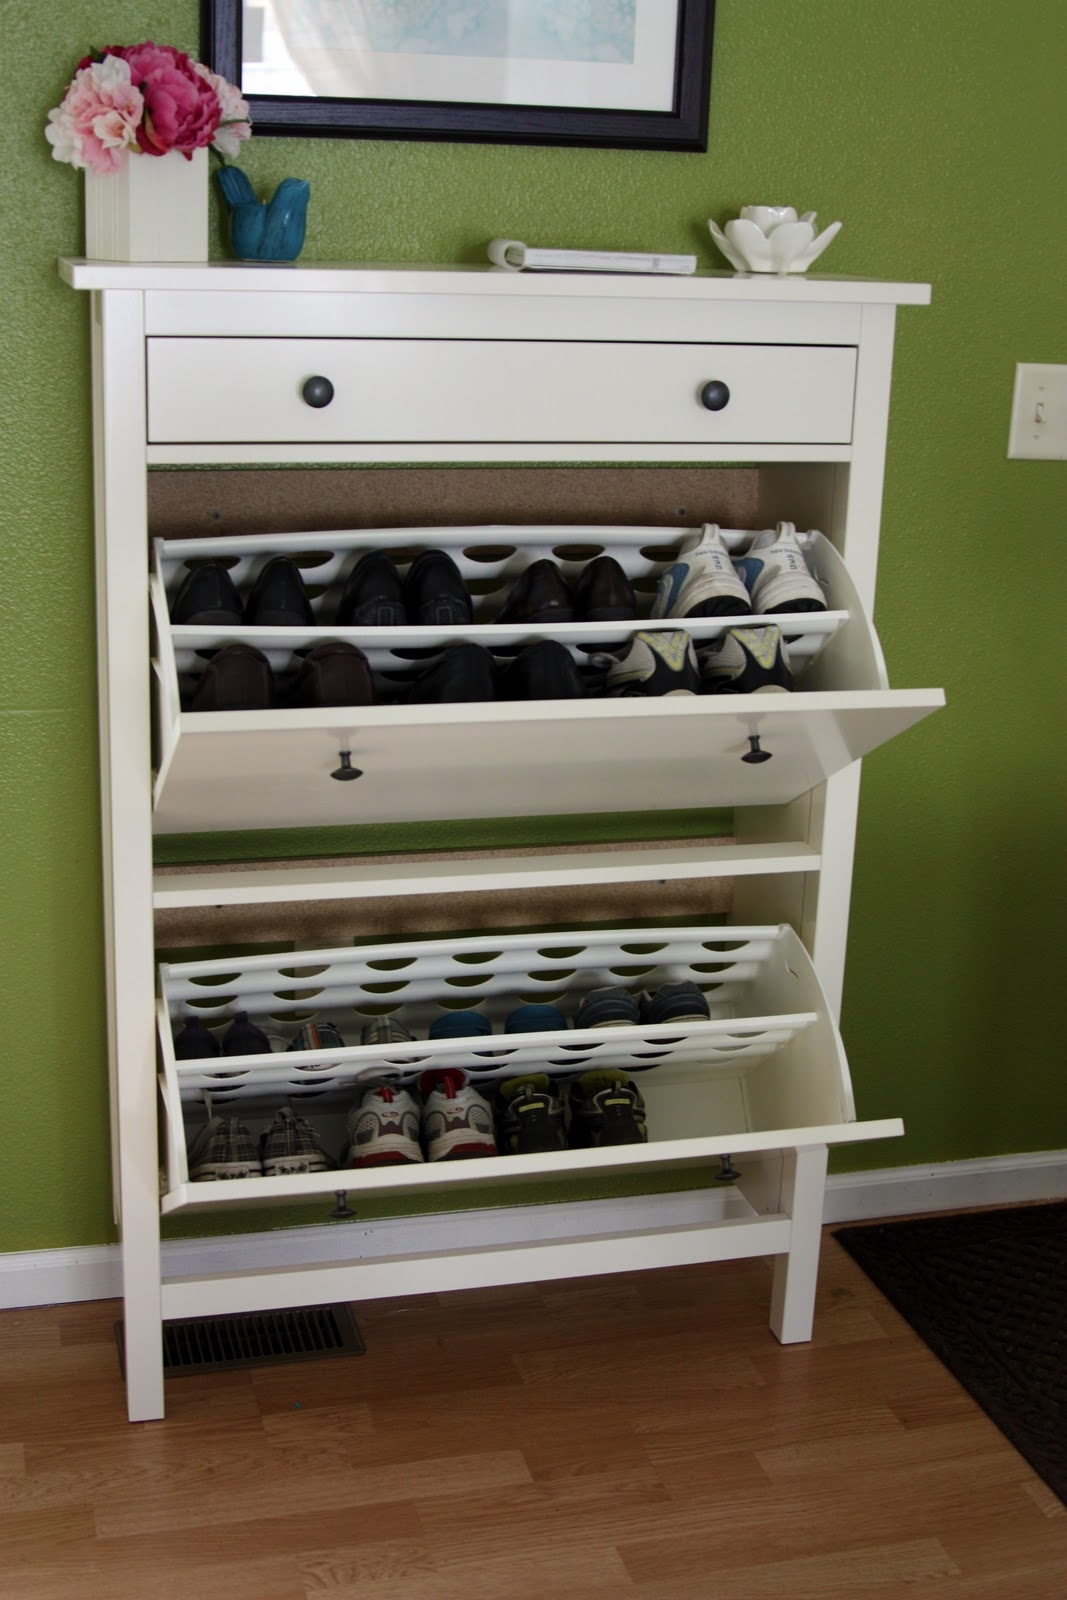 Shoe Organizer Cabinet Shoe Caddy Wire Shoe Rack Tall Narrow Shoe Pertaining To Wardrobe Shoe Storages (Image 17 of 25)